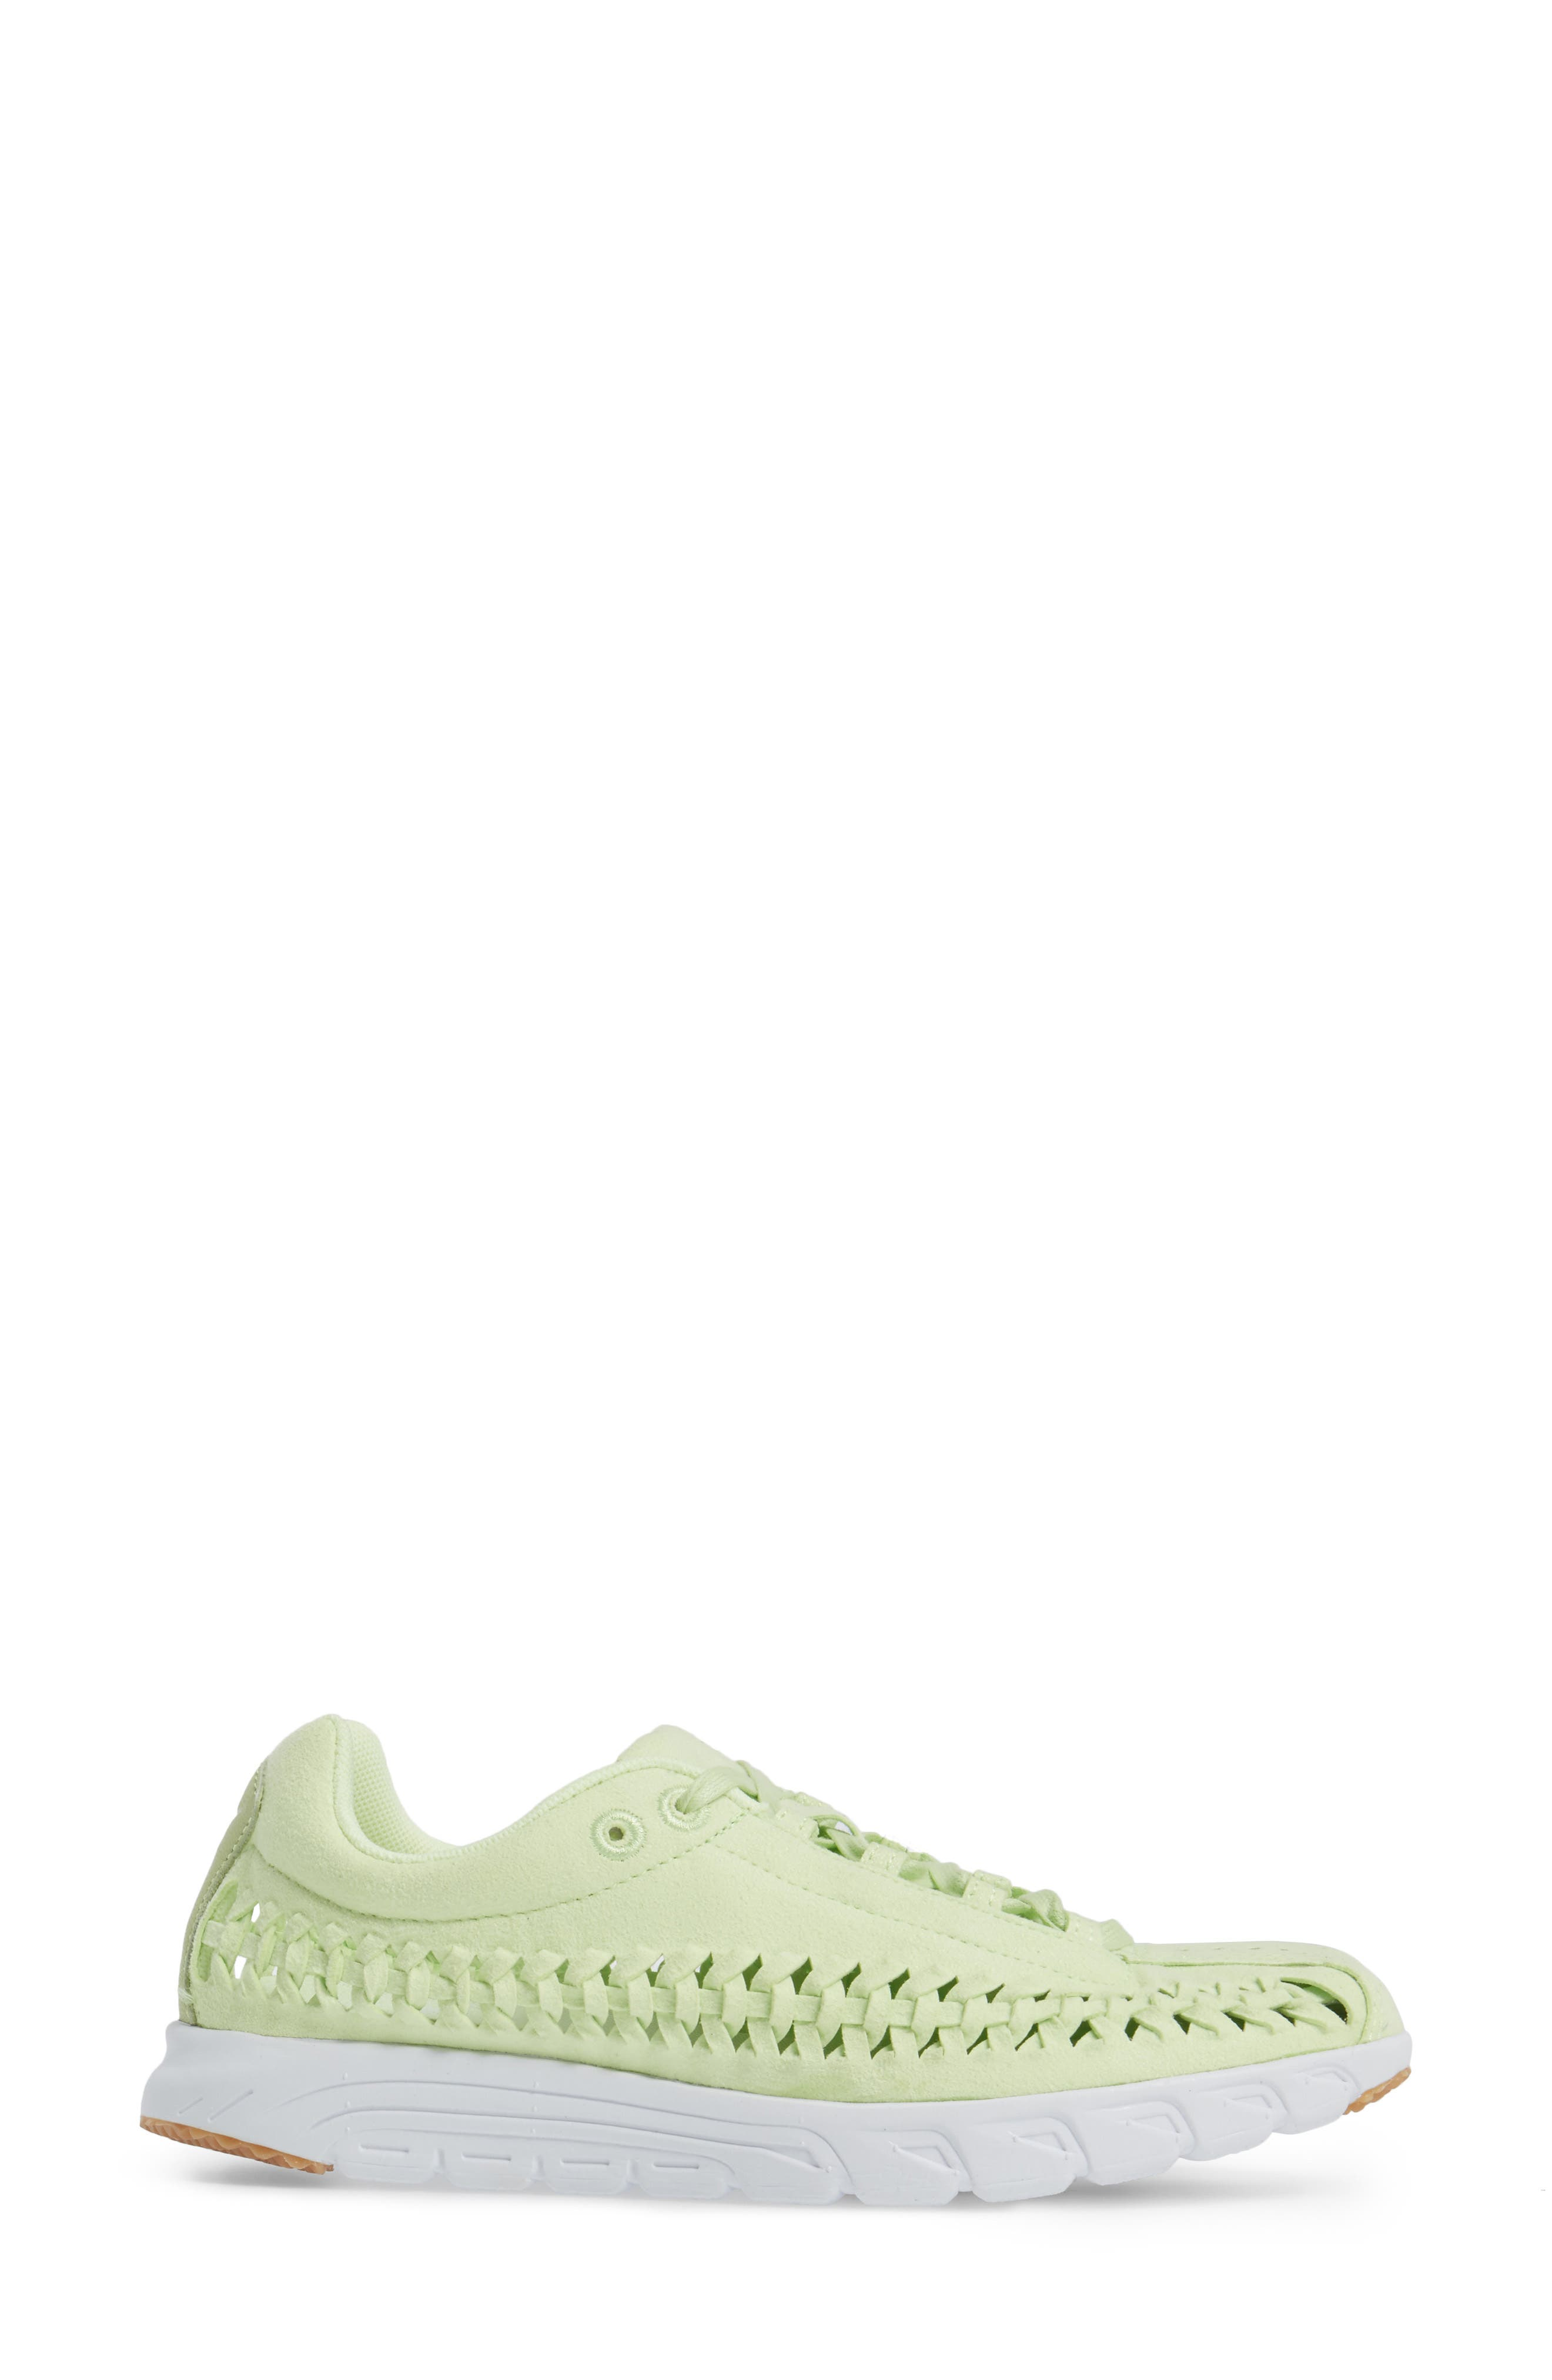 Mayfly Woven QS Sneaker,                             Alternate thumbnail 3, color,                             Liquid Lime/ Liquid Lime